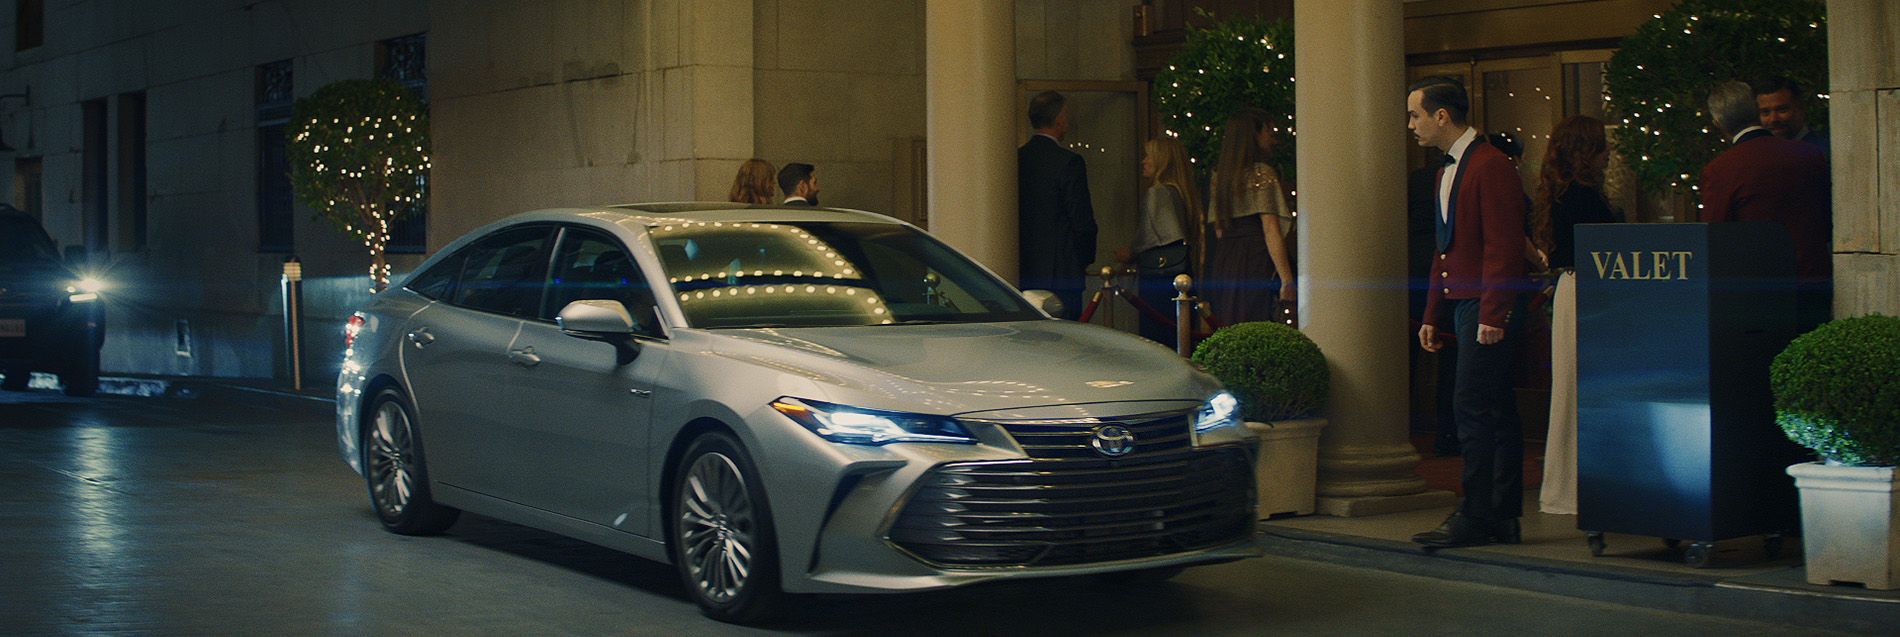 Toyota Celebrates A Sedan Serious About Play The All New